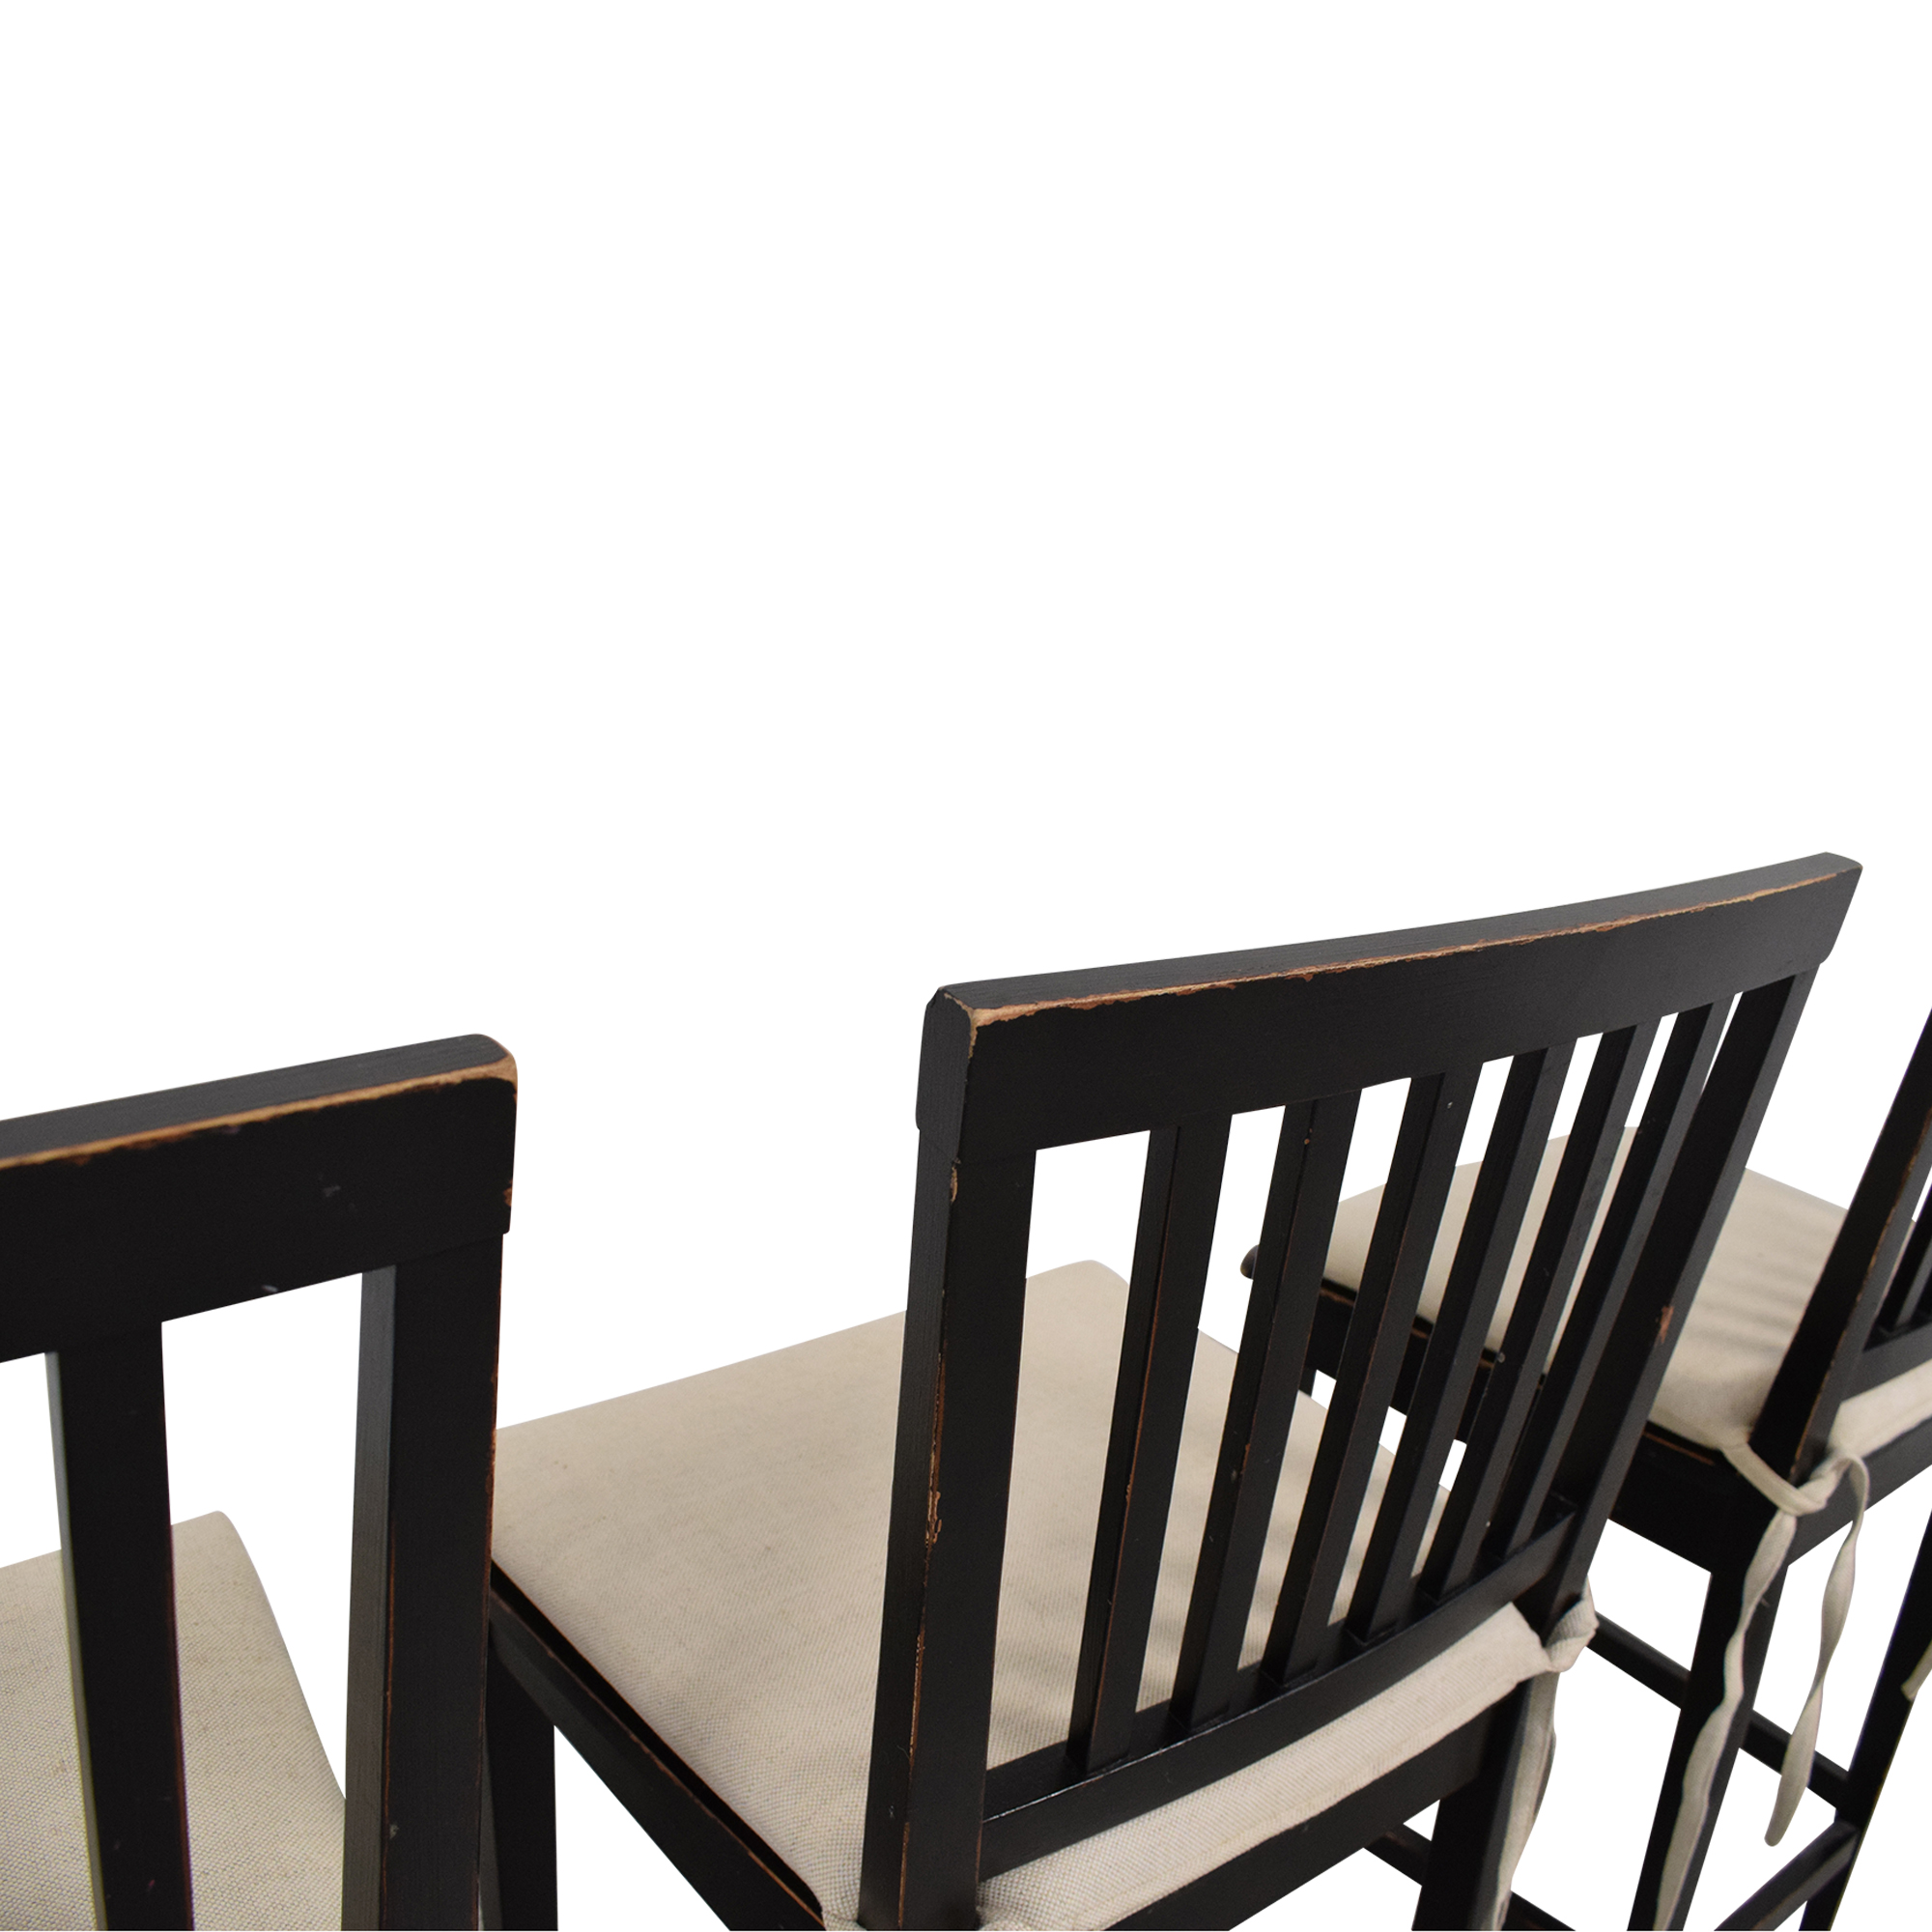 Crate & Barrel Crate & Barrel Buying & Design Counter Height Chairs second hand